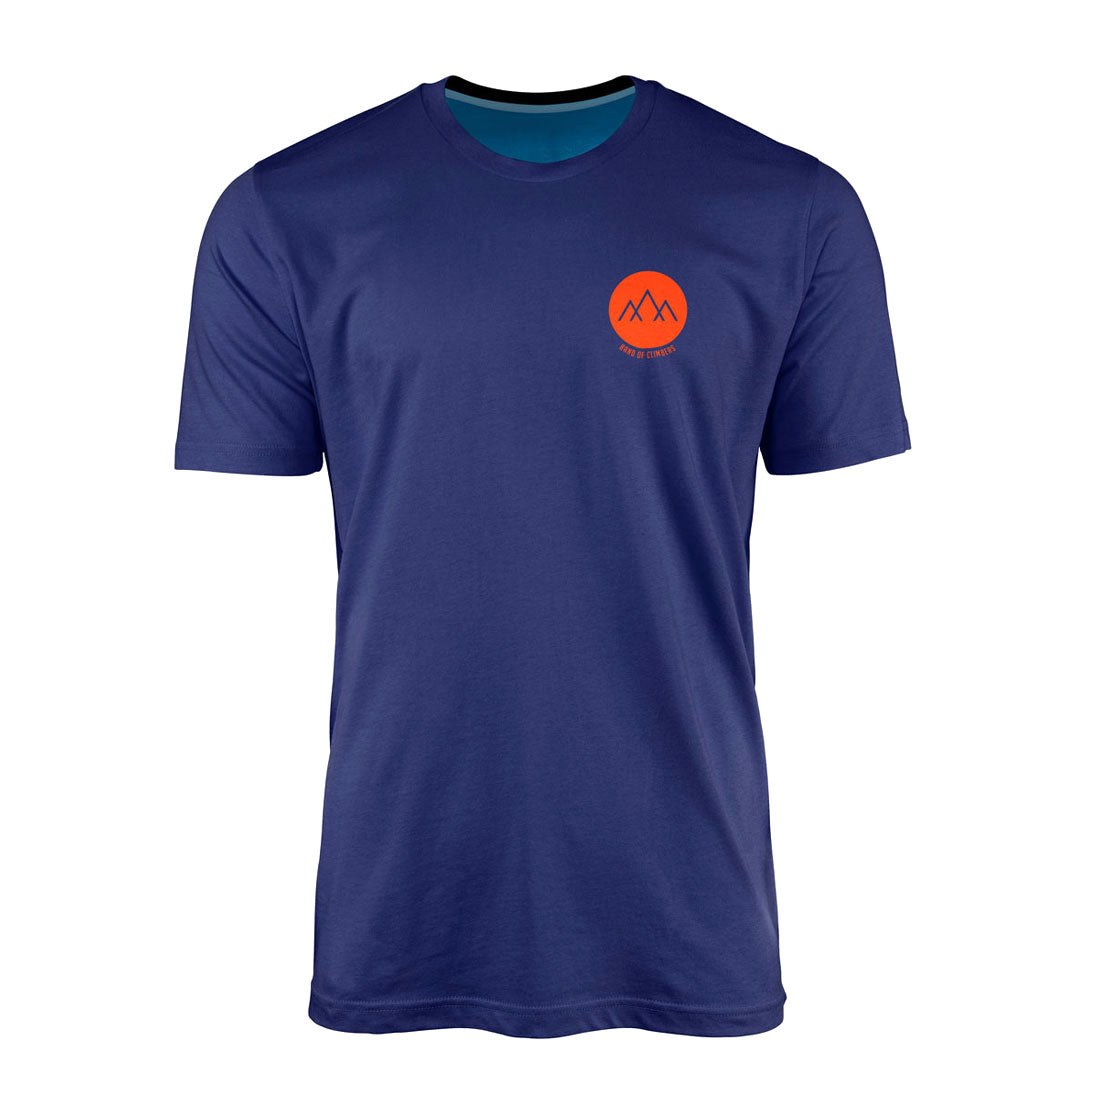 Icon Tech T-shirt - Navy